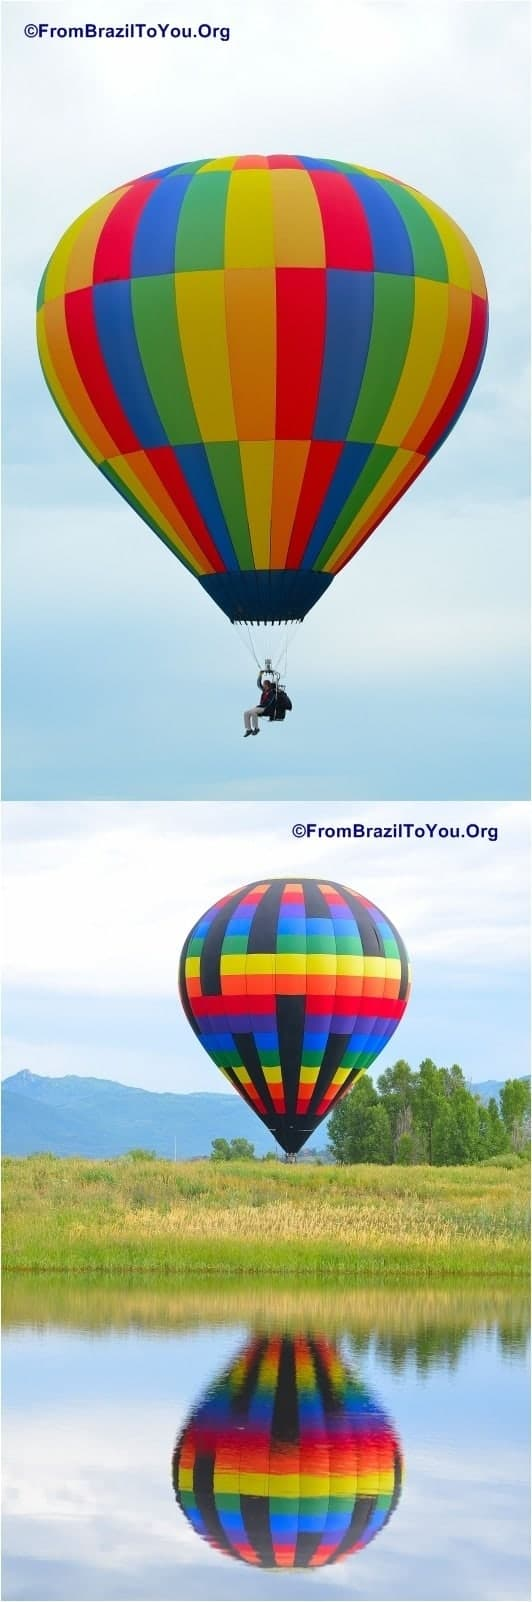 Hot Air Balloon Festival in Steamboat Springs, Colorado by FromBrazilToYou.Org